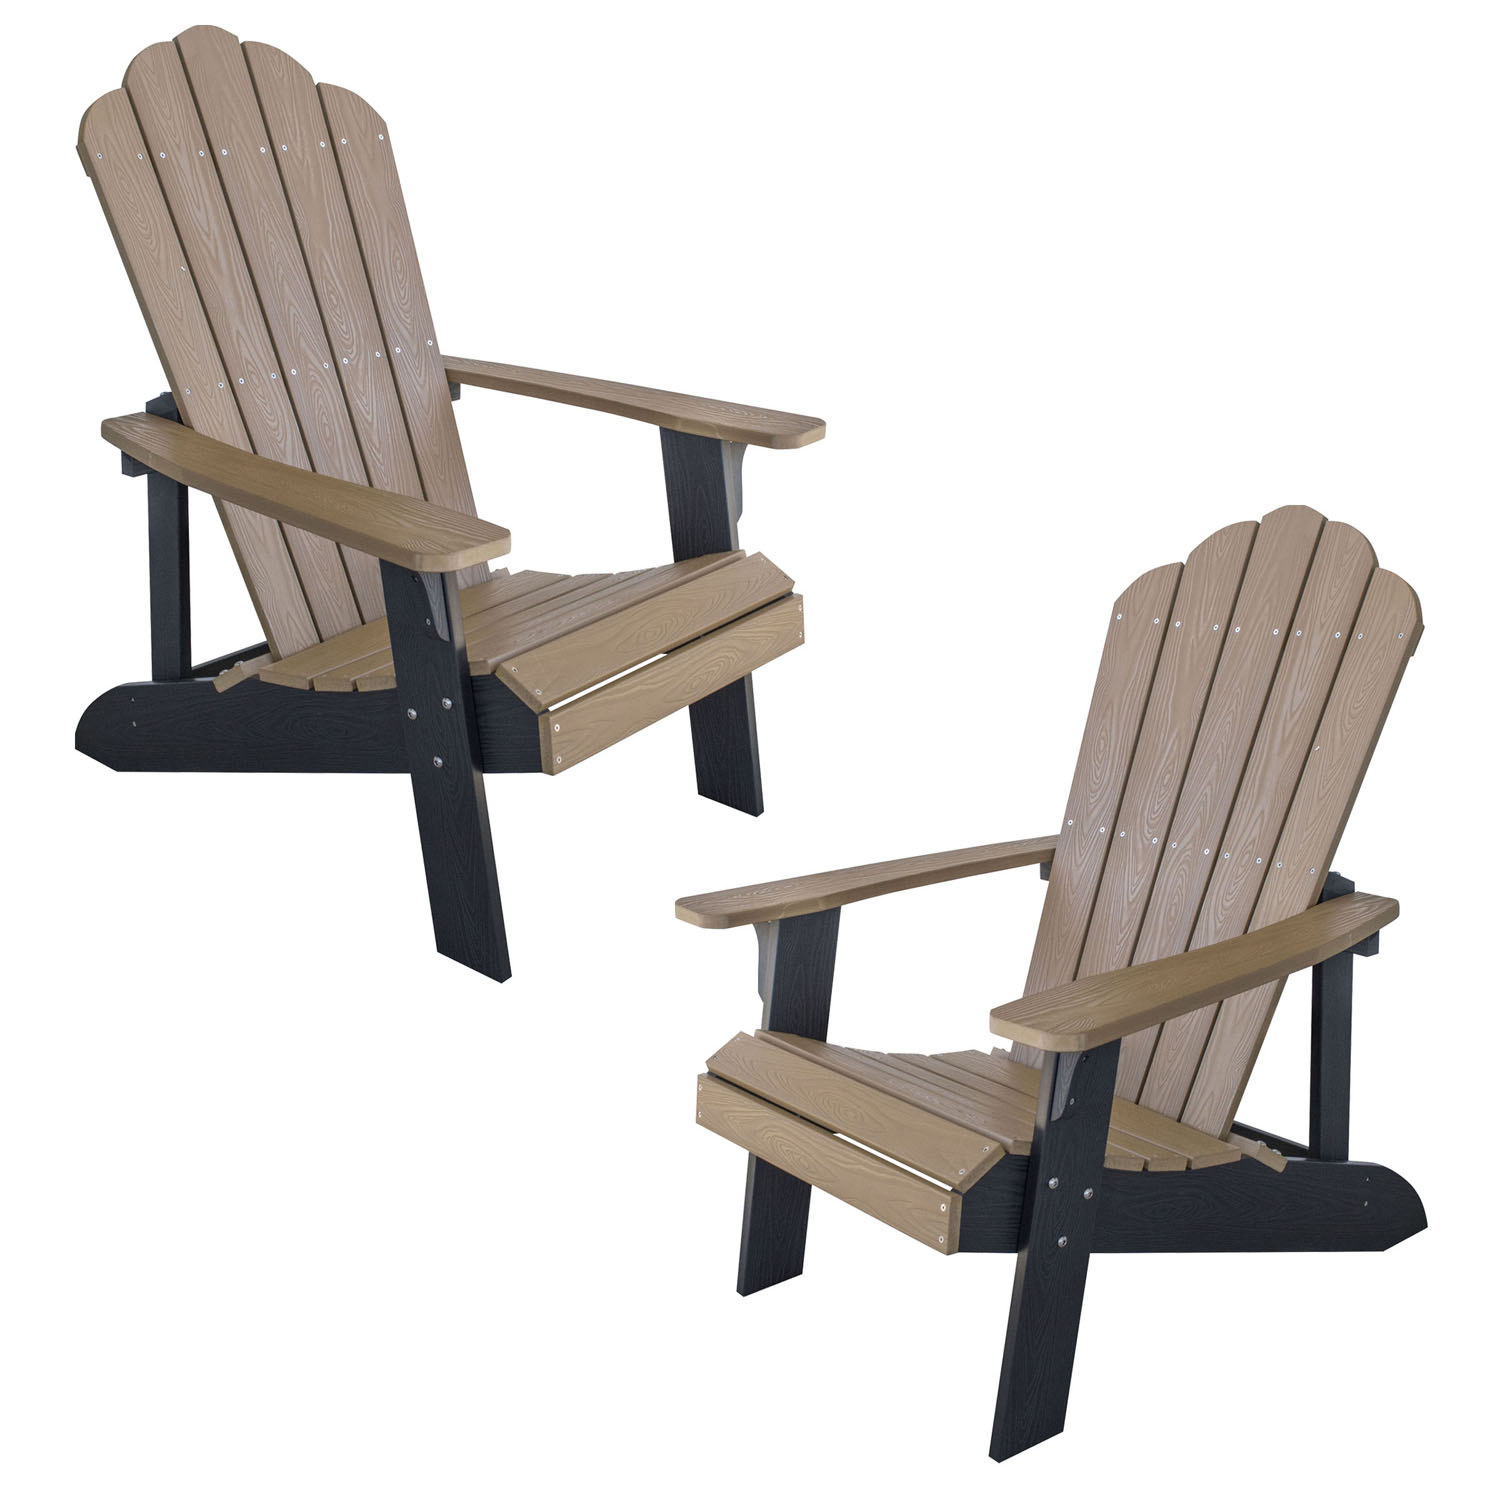 Simulated Wood Outdoor Two Tone Adirondack Chair, Tan with Black Accents, 2 Piece Set